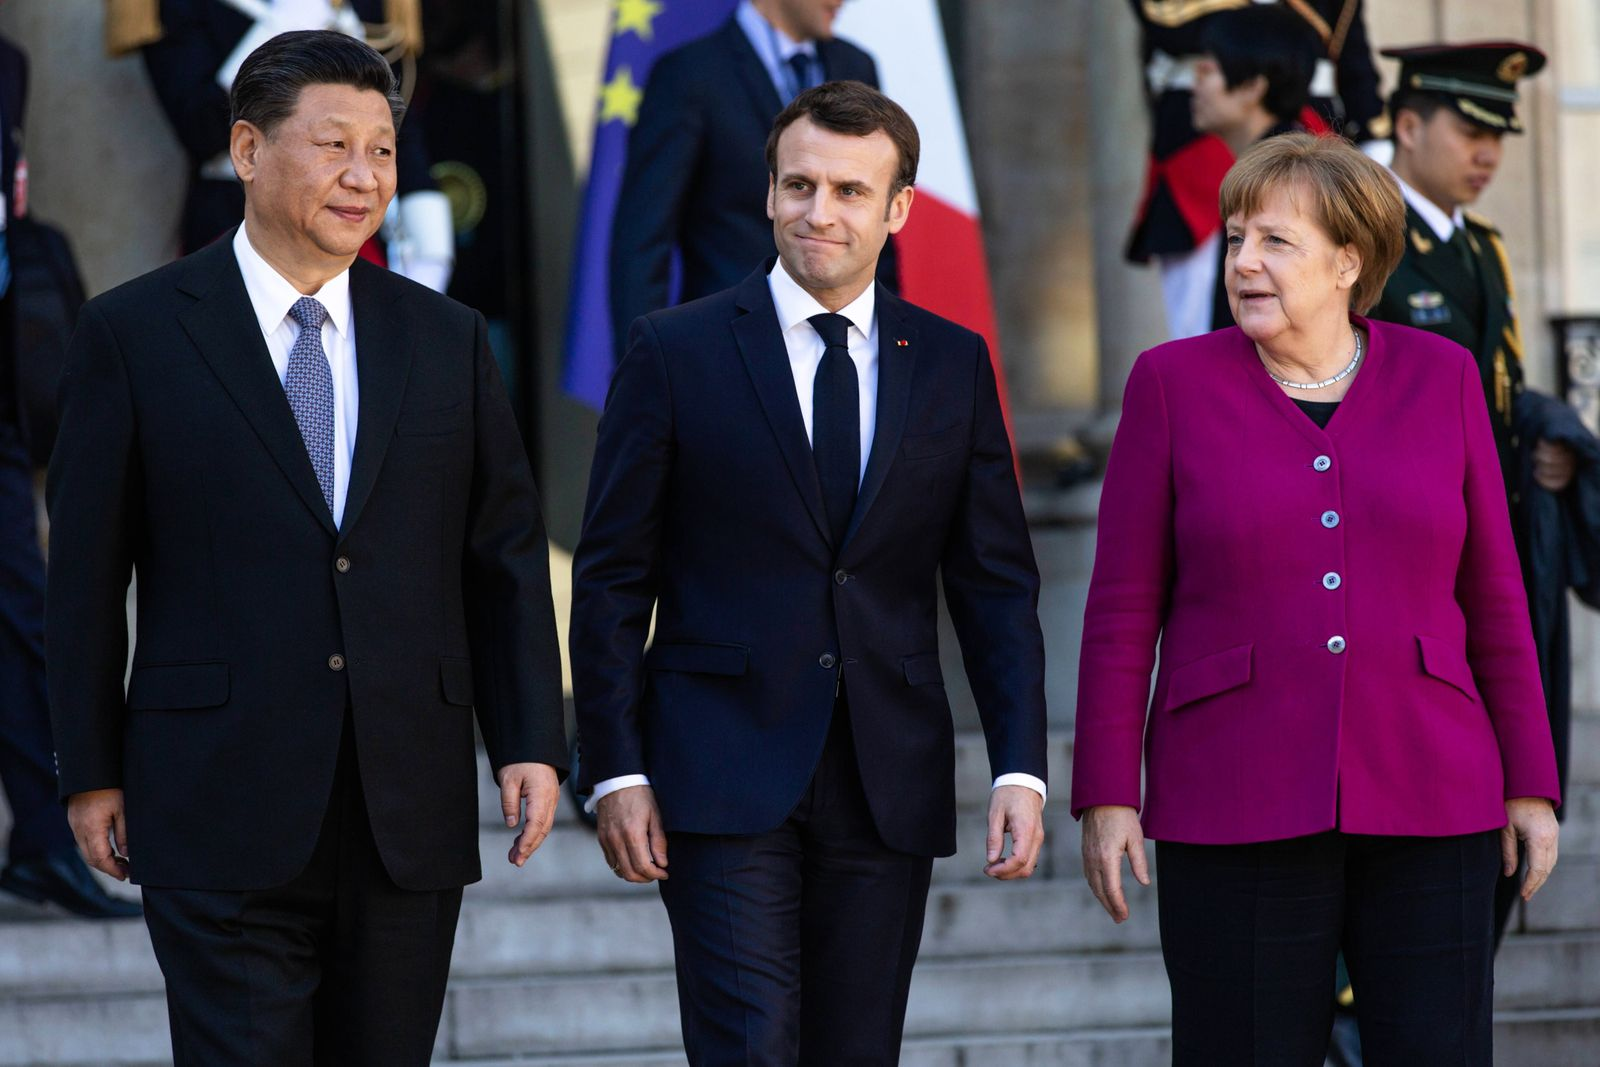 President of the Popular Republic of China Xi Jinping French President Emmanuel Macron and Chancel